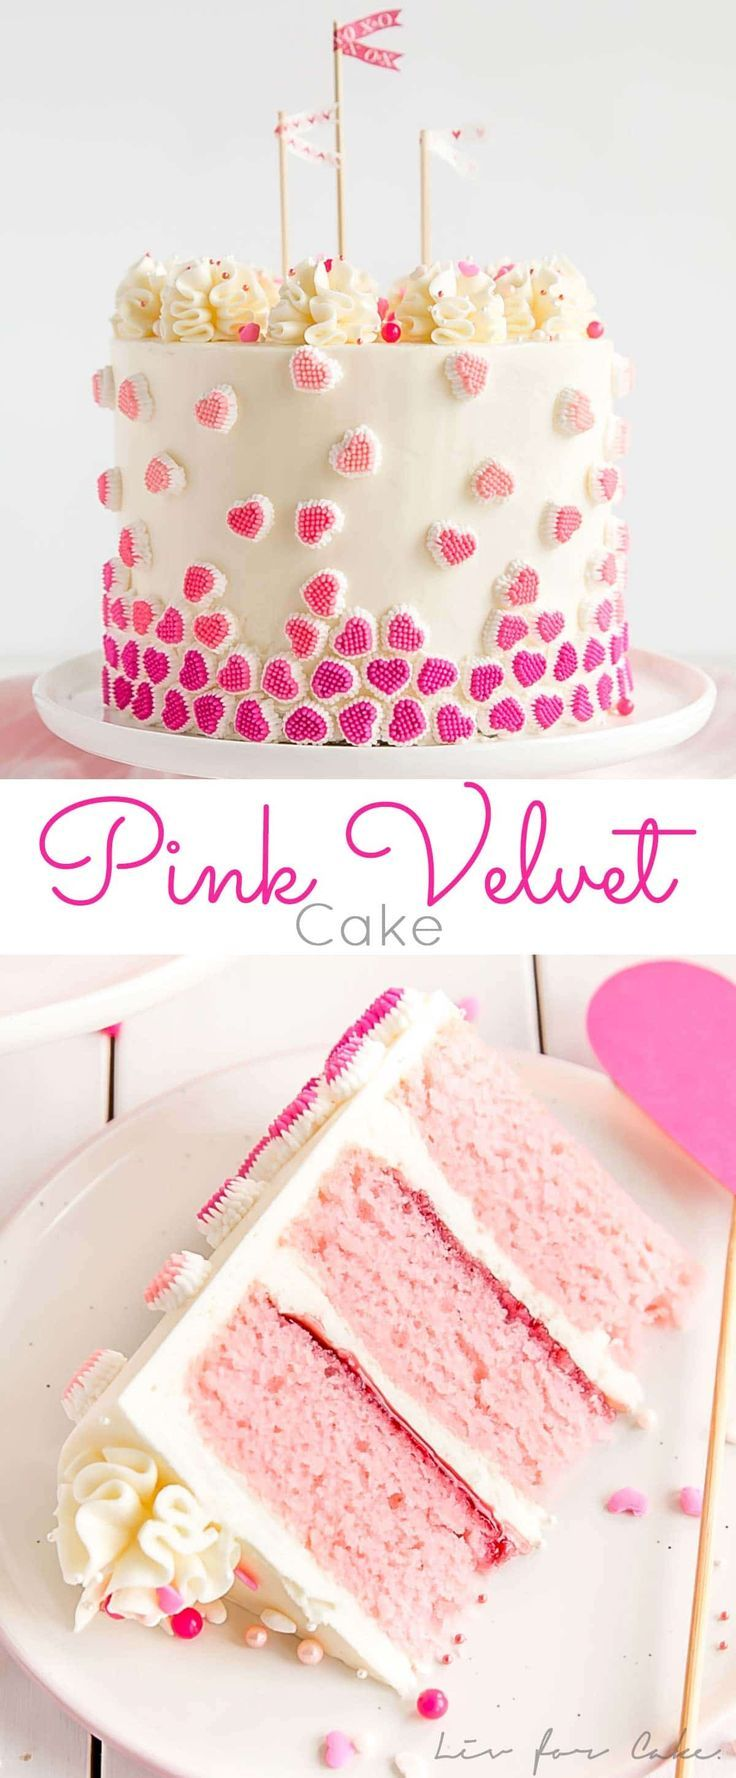 This candy heart studded Pink Velvet Cake is the perfect way to celebrate Valentine's Day with the one you love! | livforcake.com